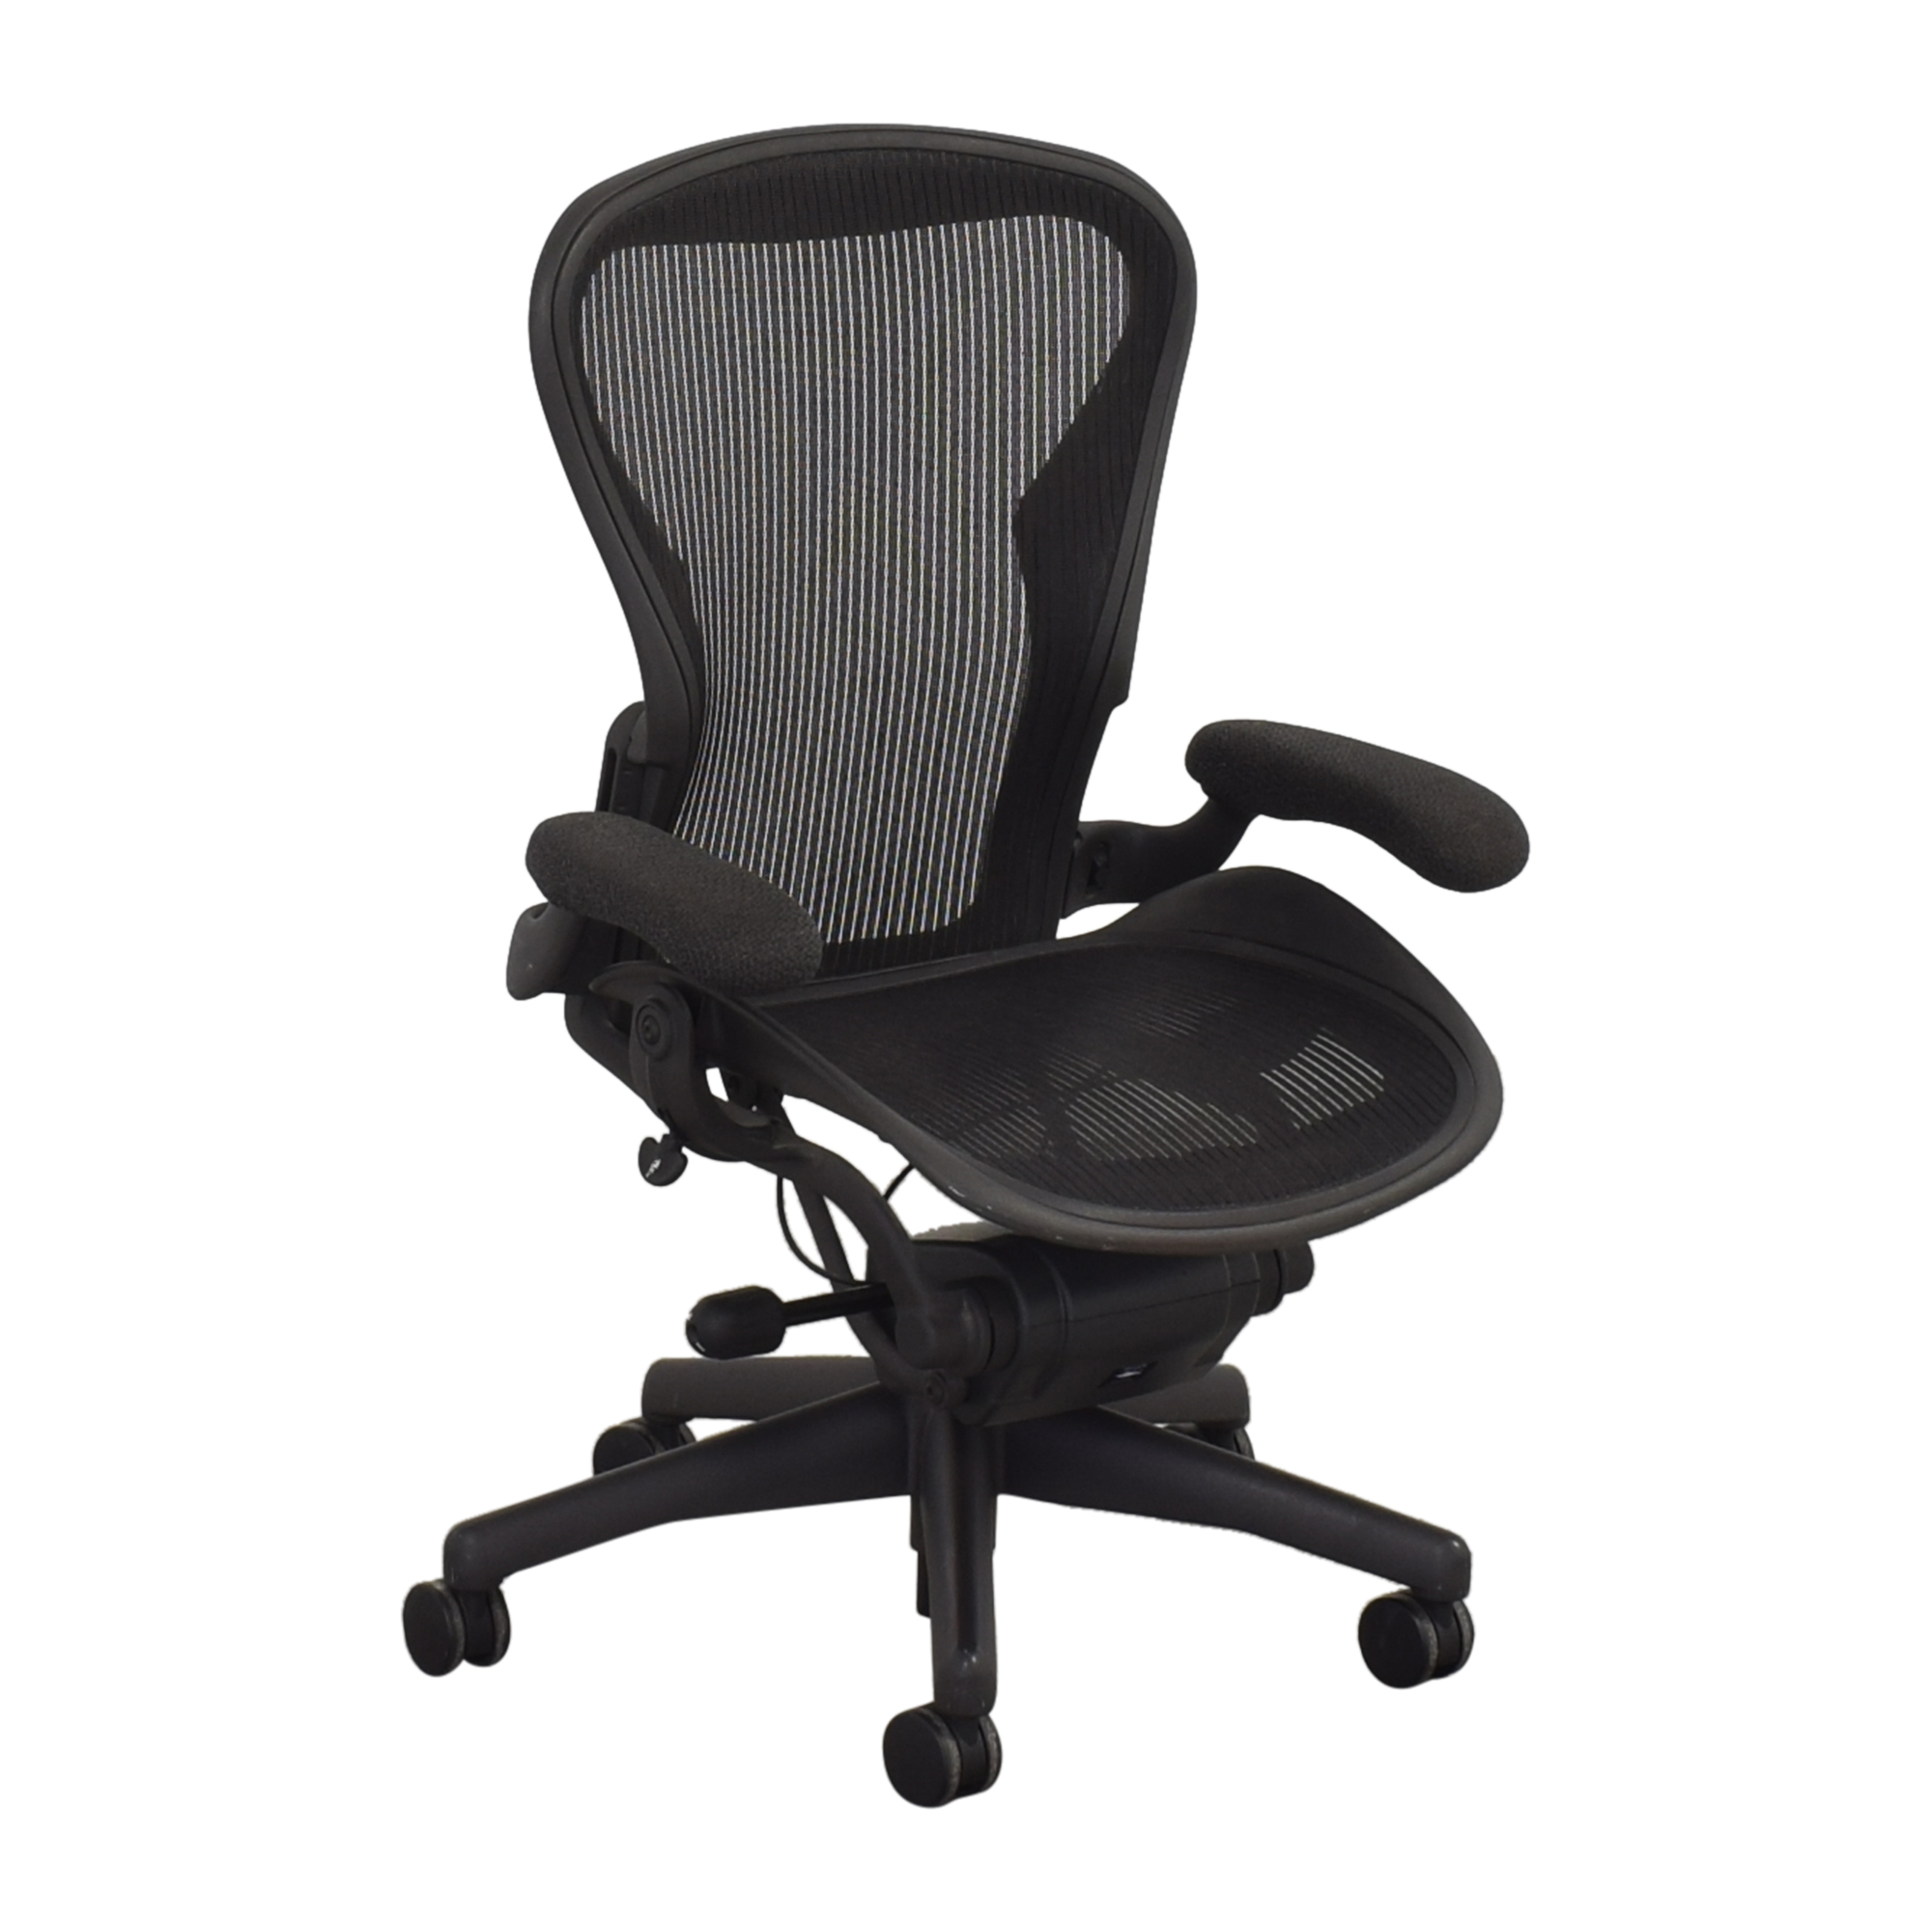 Herman Miller Herman MIller Aeron Office Chair price